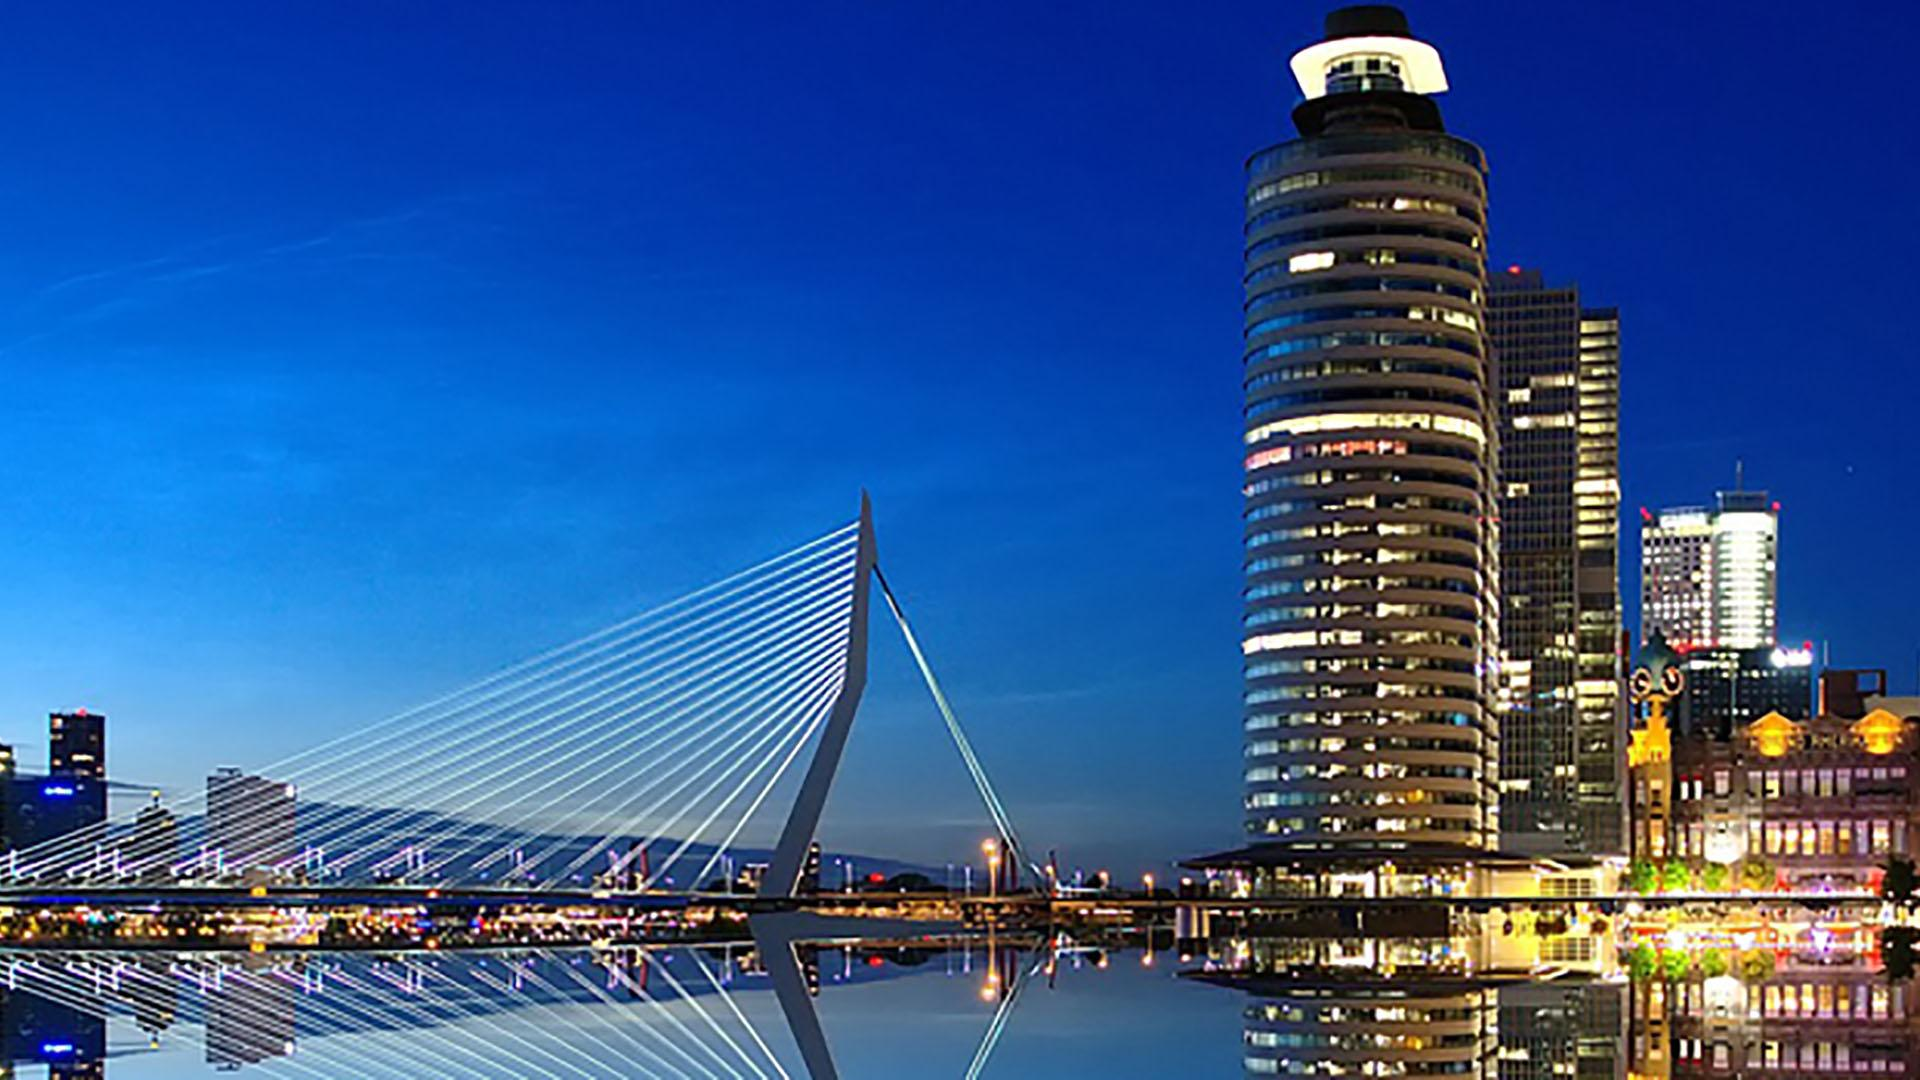 International press puts Rotterdam in the spotlight.